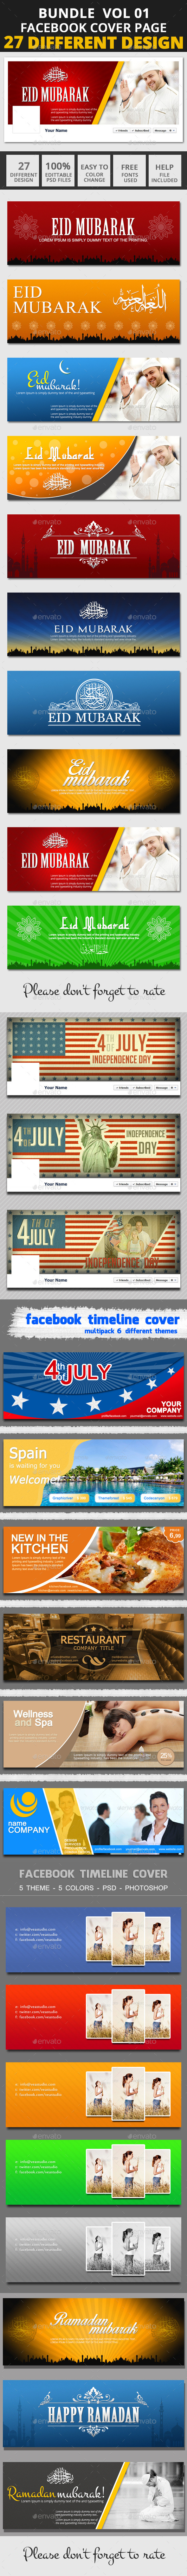 Facebook Bundle Vol01 - Facebook Timeline Covers Social Media